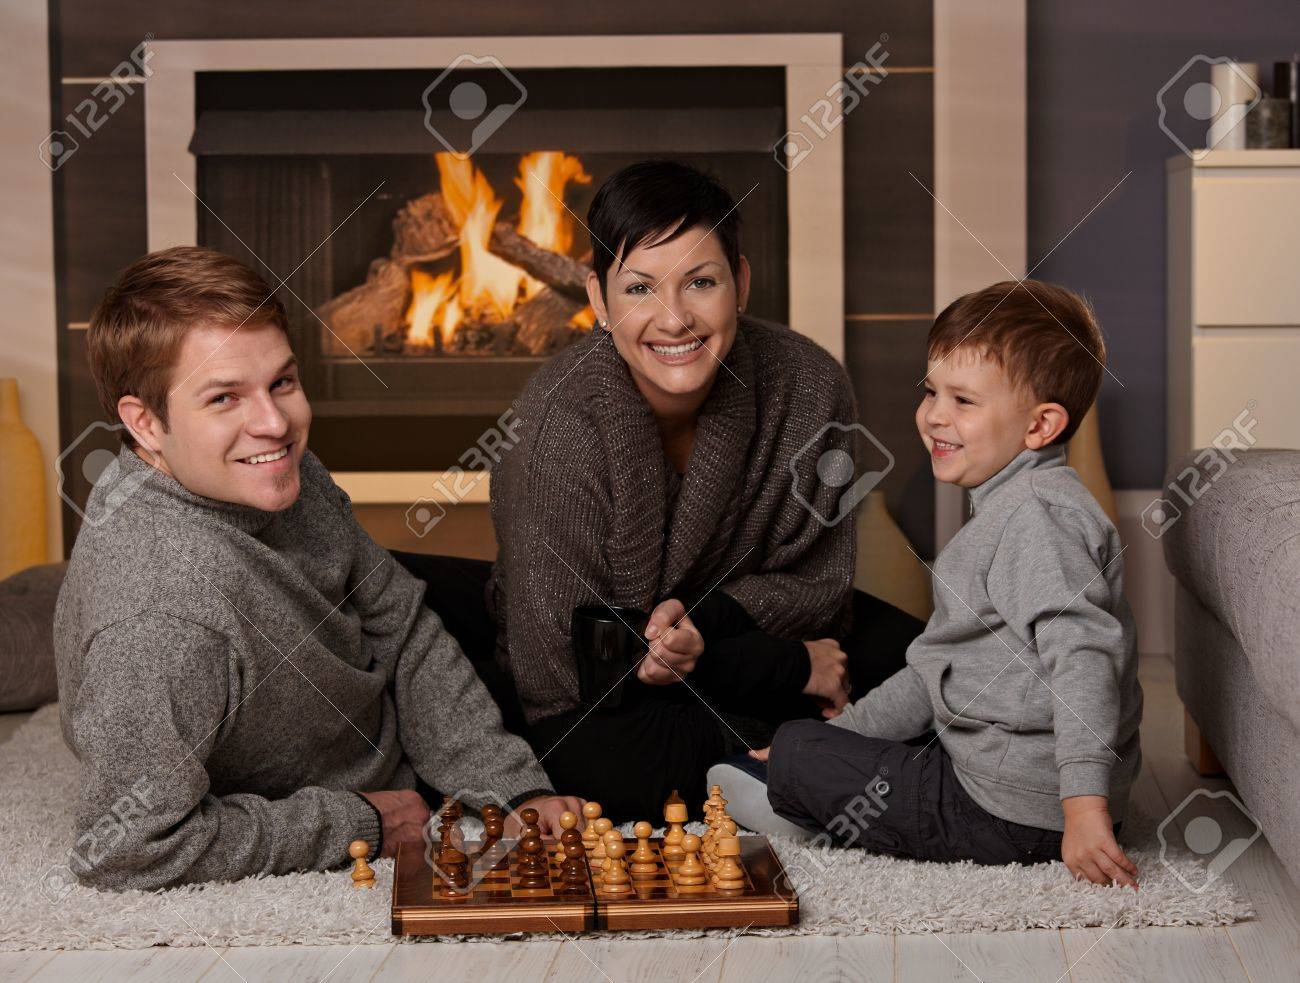 Happy family playing chess at home in a cold winter day, looking at camera, smiling. Stock Photo - 8752509